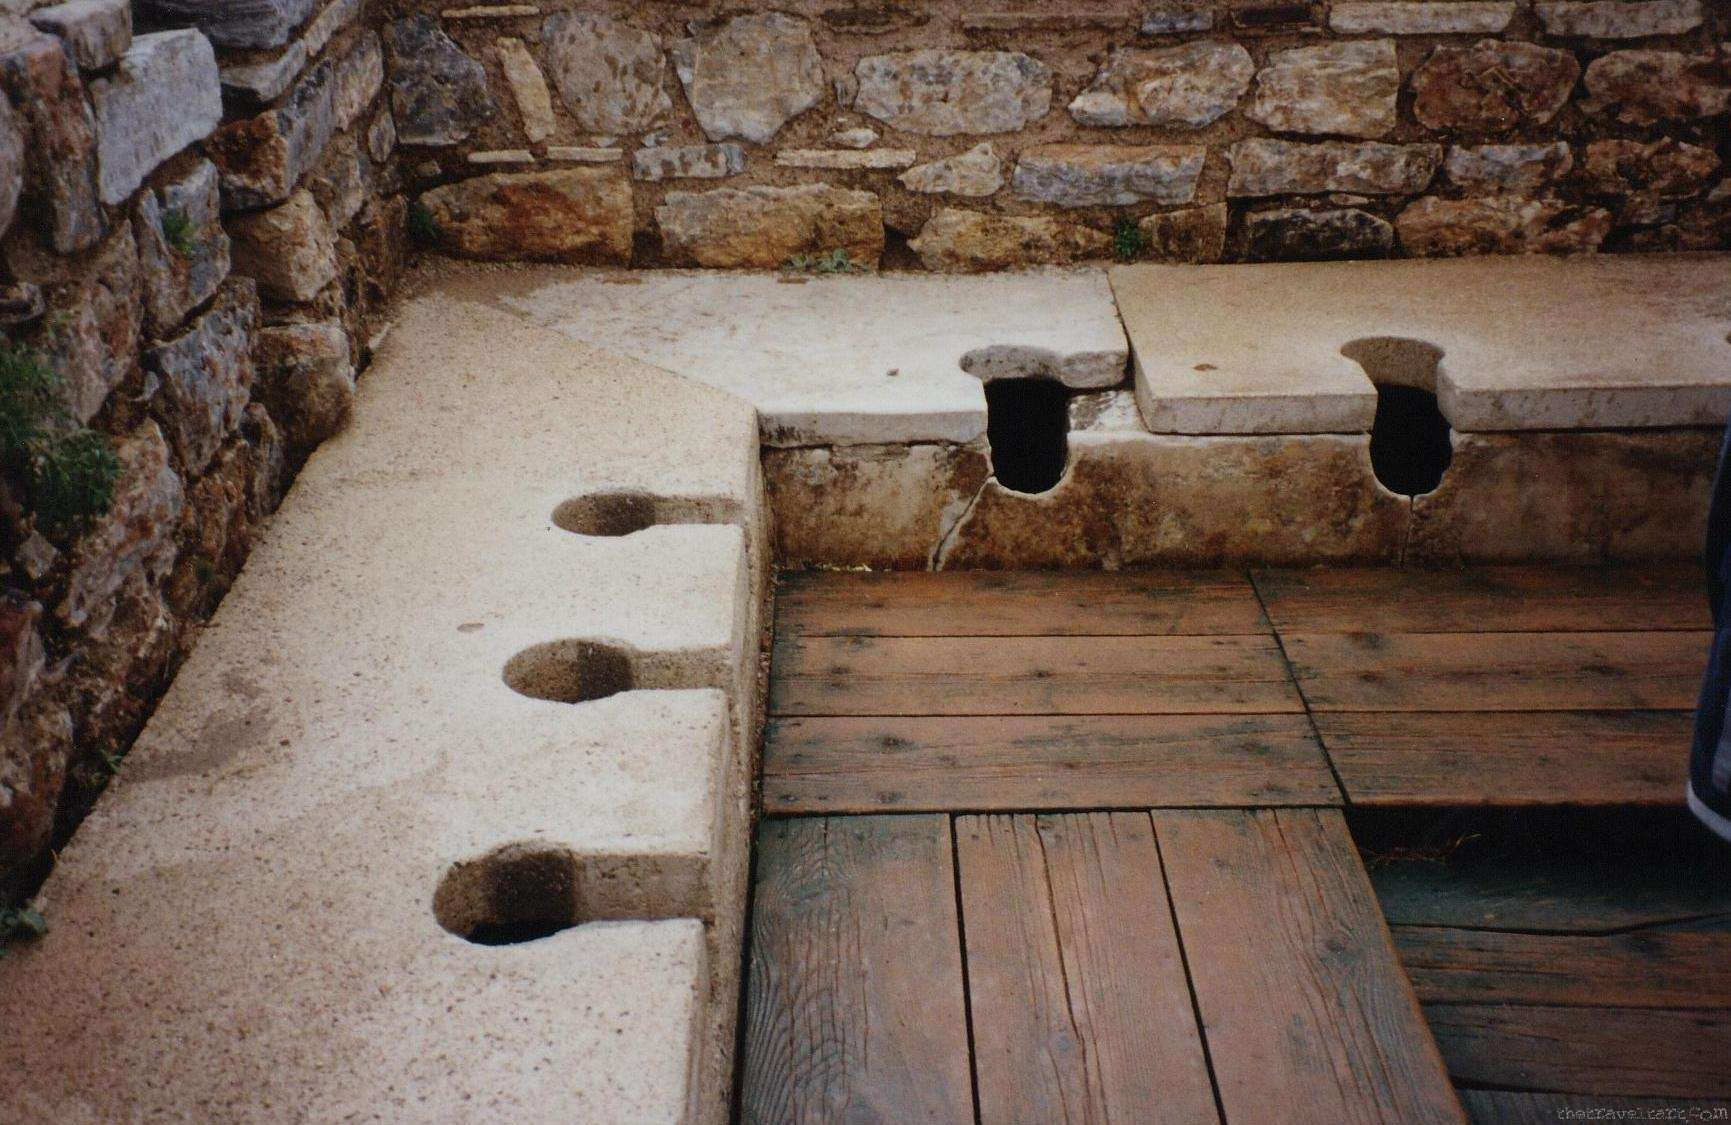 Toilet History - The Roman Flushing Toilet